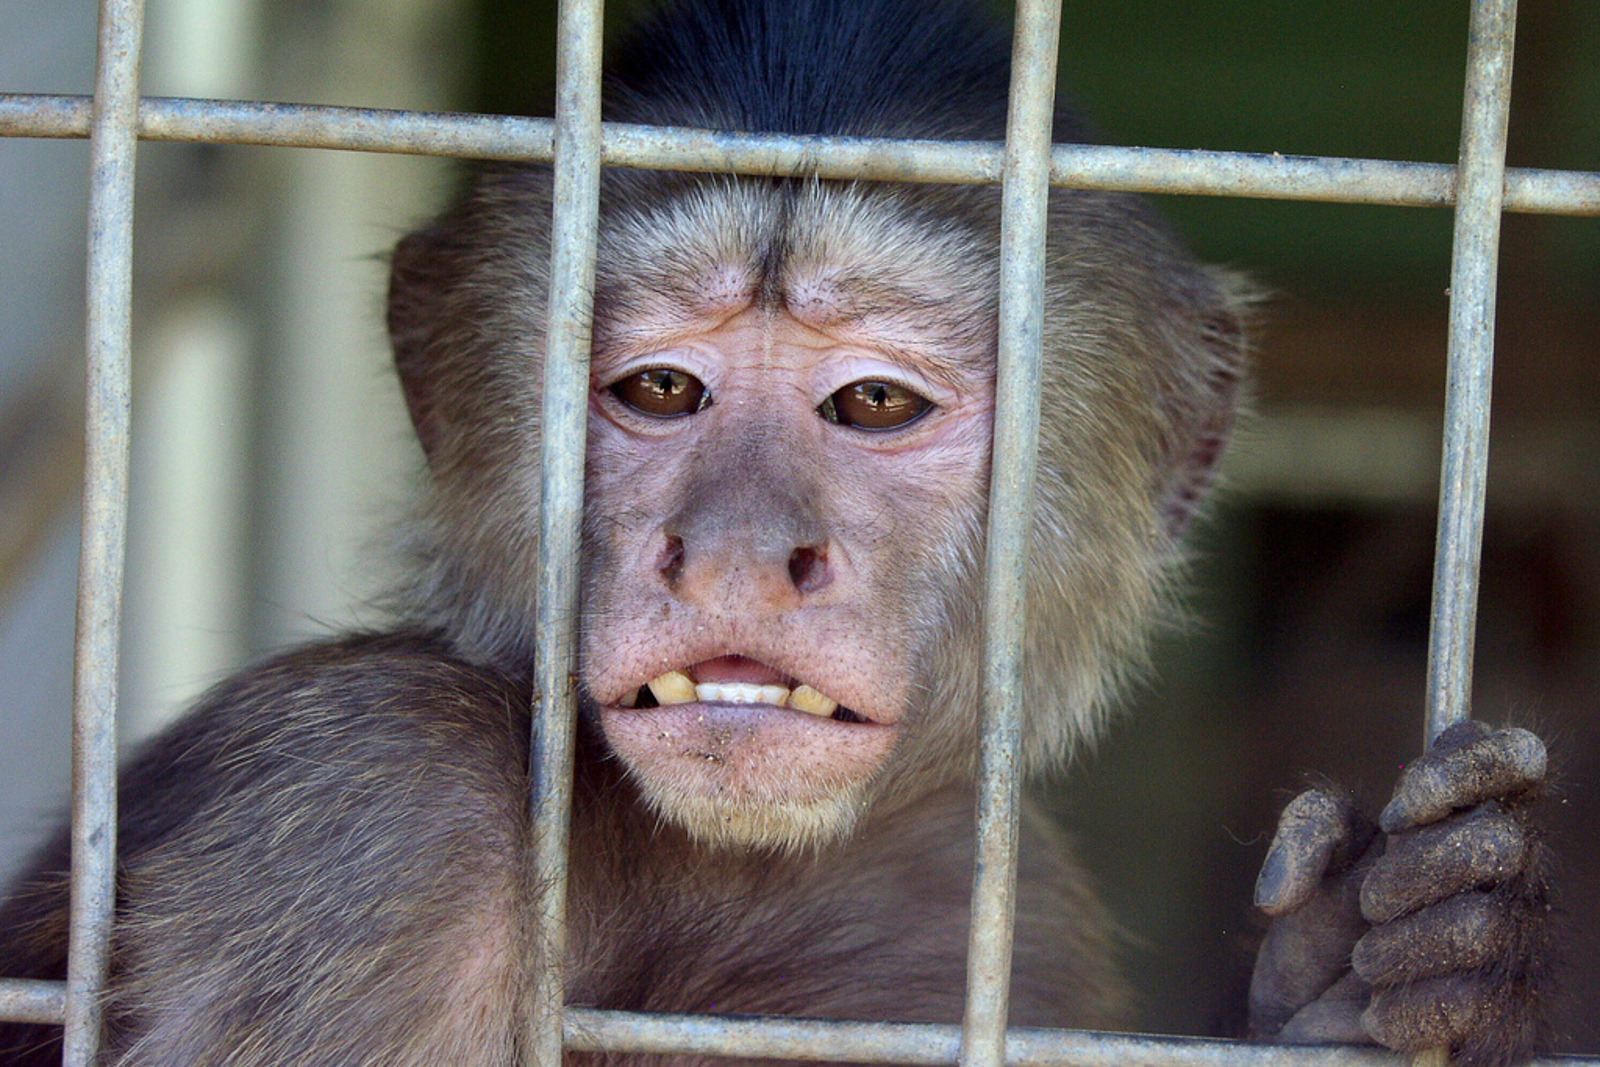 Drop This Class: 6 Universities Who Conduct Cruel Animal Research and Testing